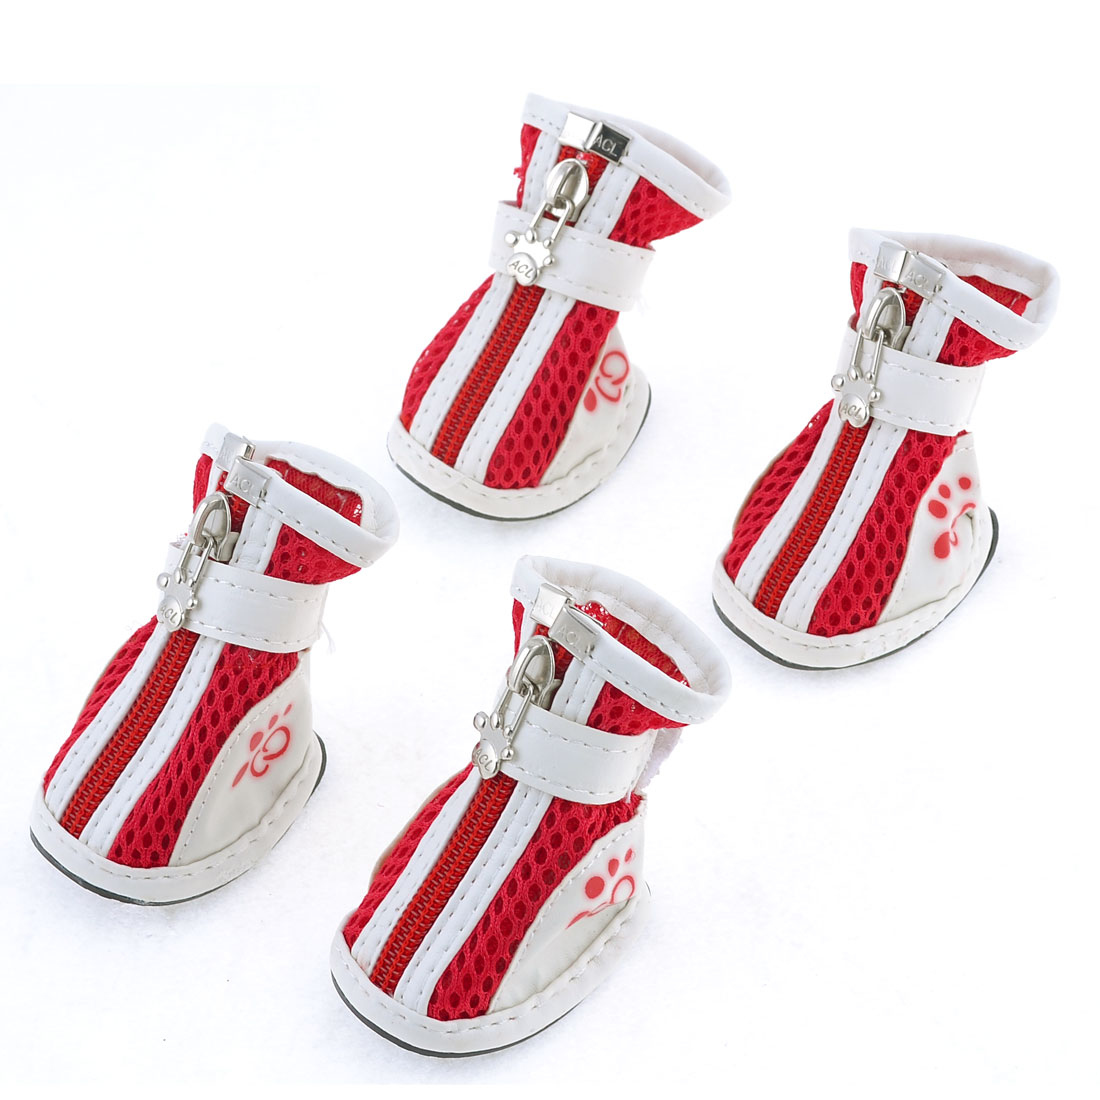 Pet Doggy Yorkie Chihuaha Zipper Closure White Red Meshy Shoes 2 Pair M